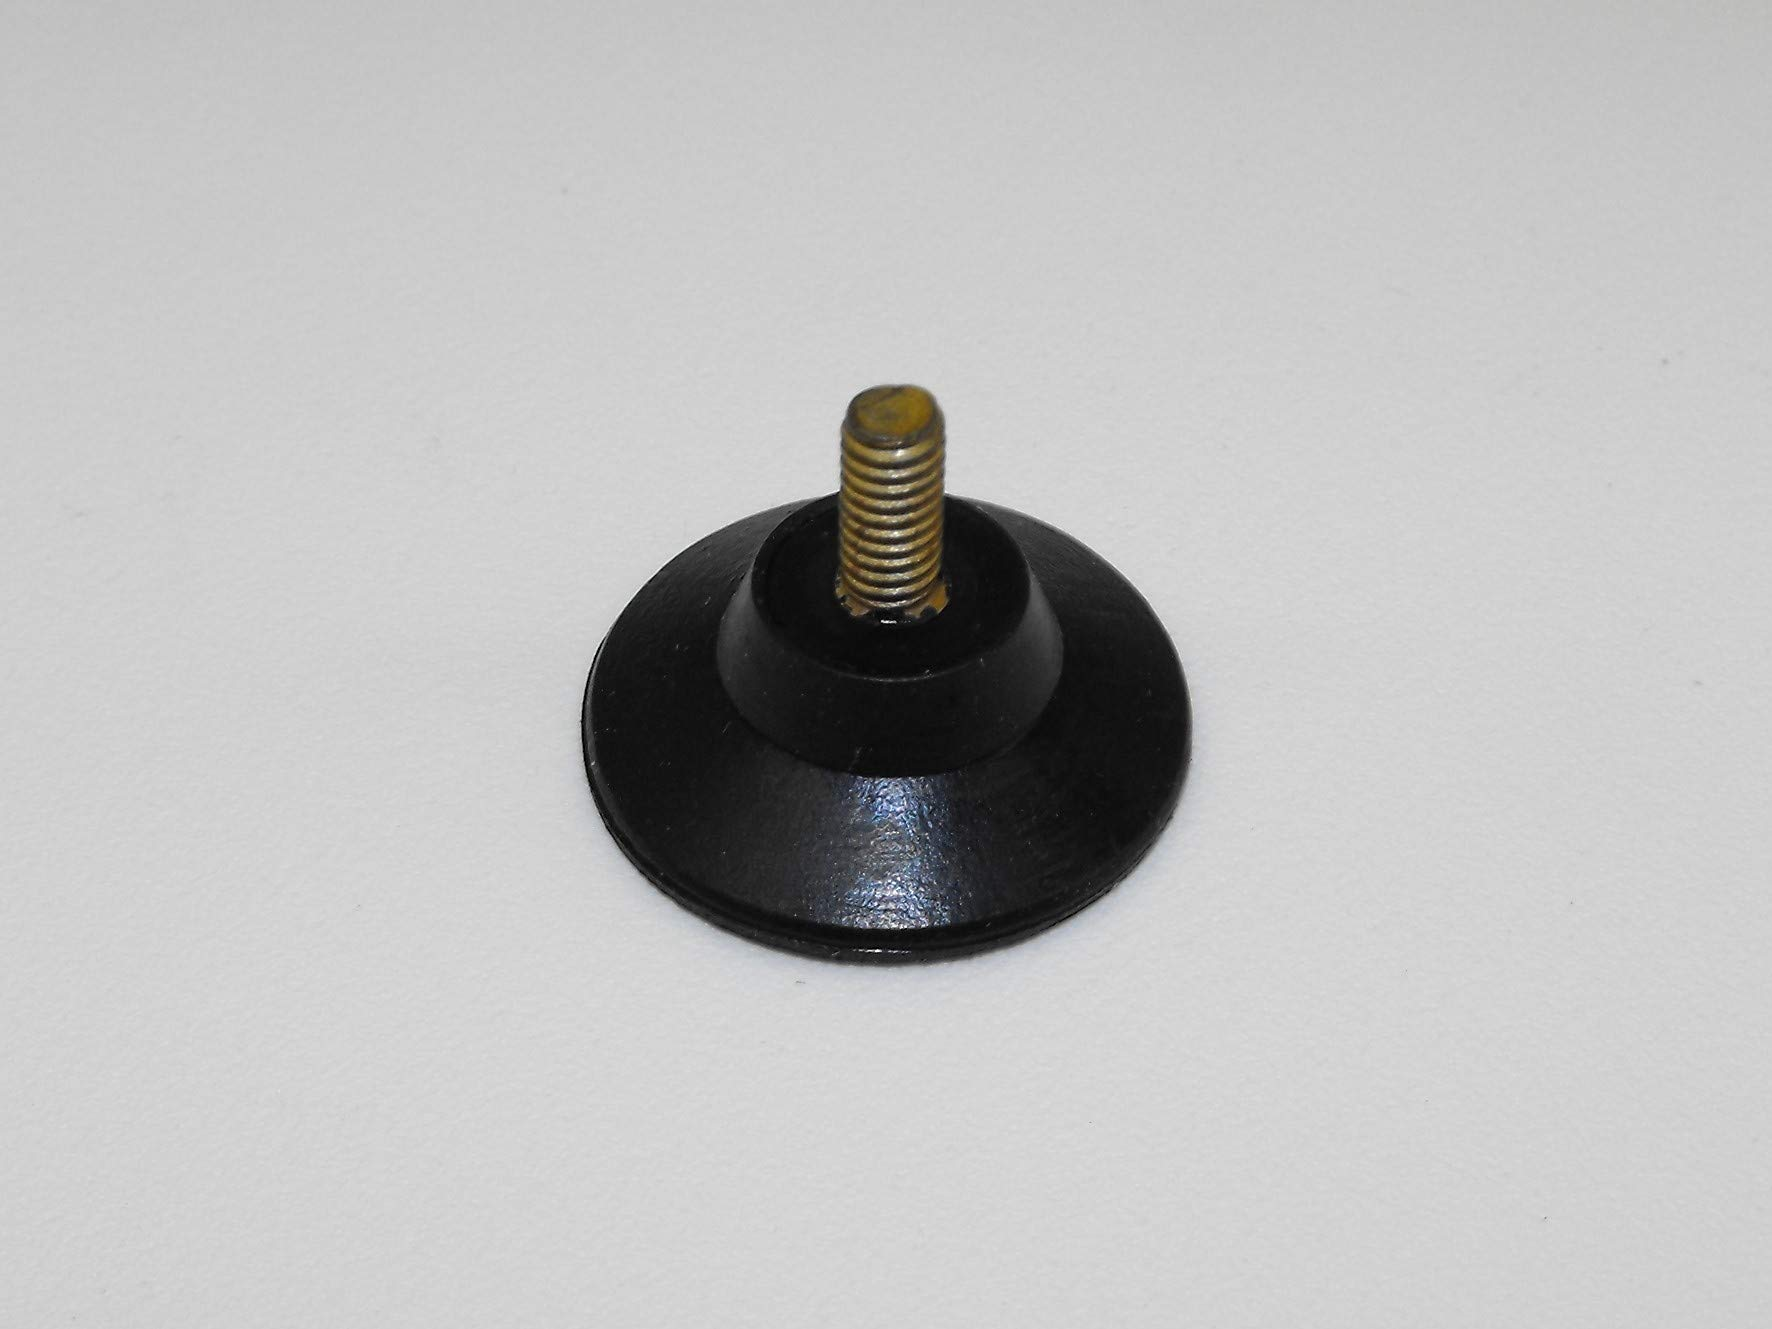 JL Missouri Parts 3/8'' #8-32 Screw in 1'' Rubber Suction Cup, 5/16'' Tall, Made in USA High Foot by JL Missouri Parts (Image #2)